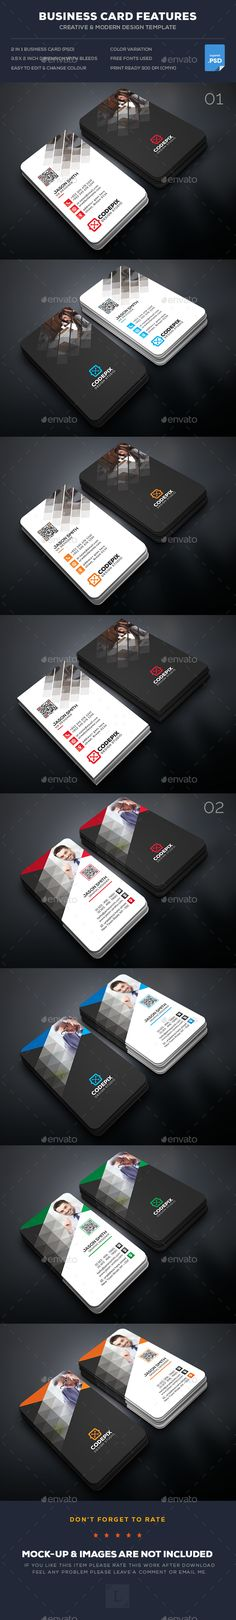 Corporate Business Card Templates PSD Bundle. Download here: https://graphicriver.net/item/corporate-business-card-bundle/17549242?ref=ksioks